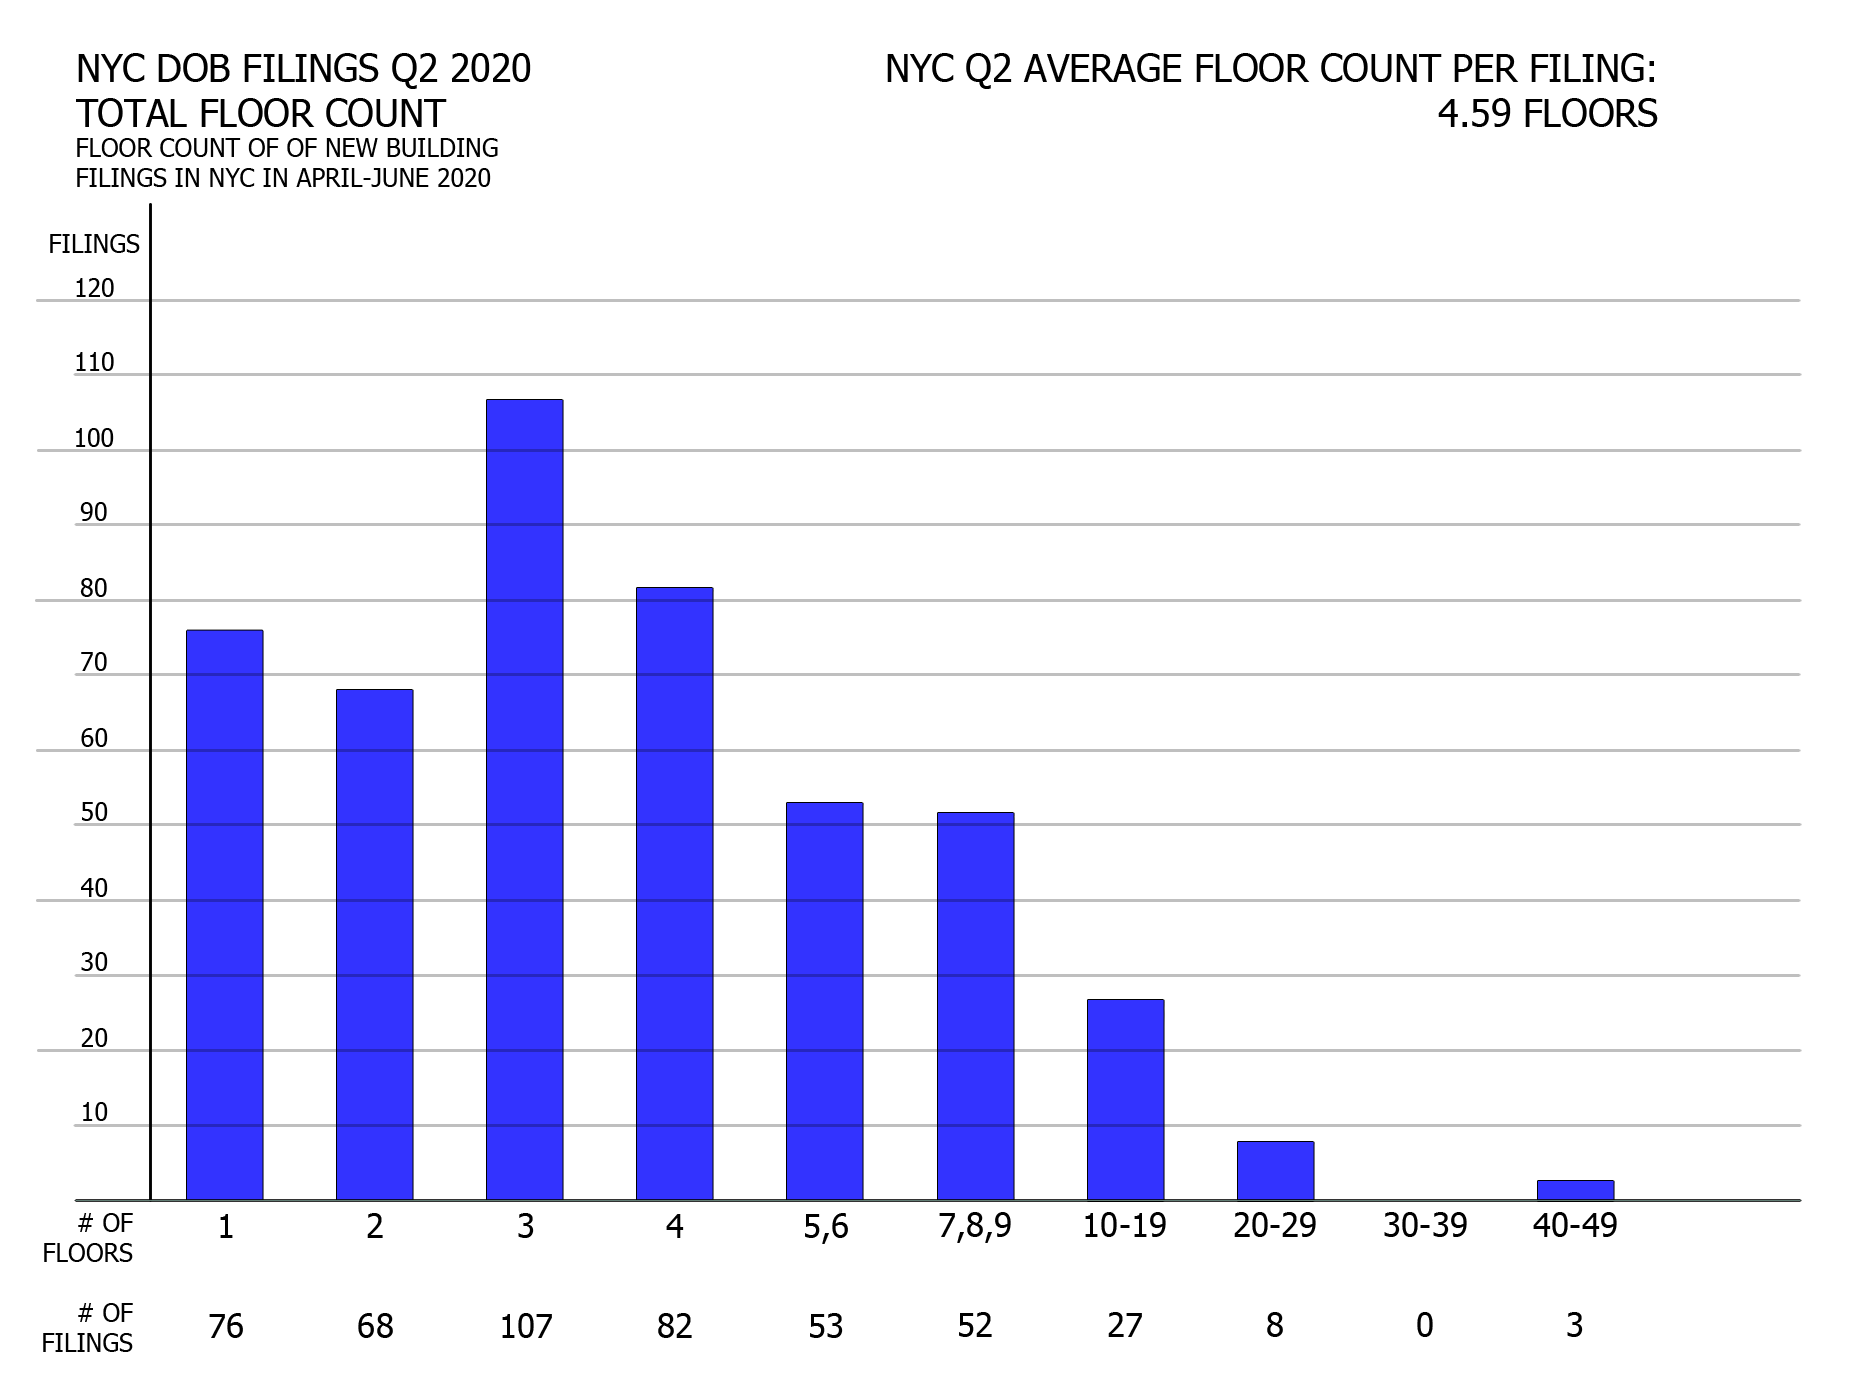 NYC Q2 2020 filings - Filings grouped by floor count. Image credit: Vitali Ogorodnikov